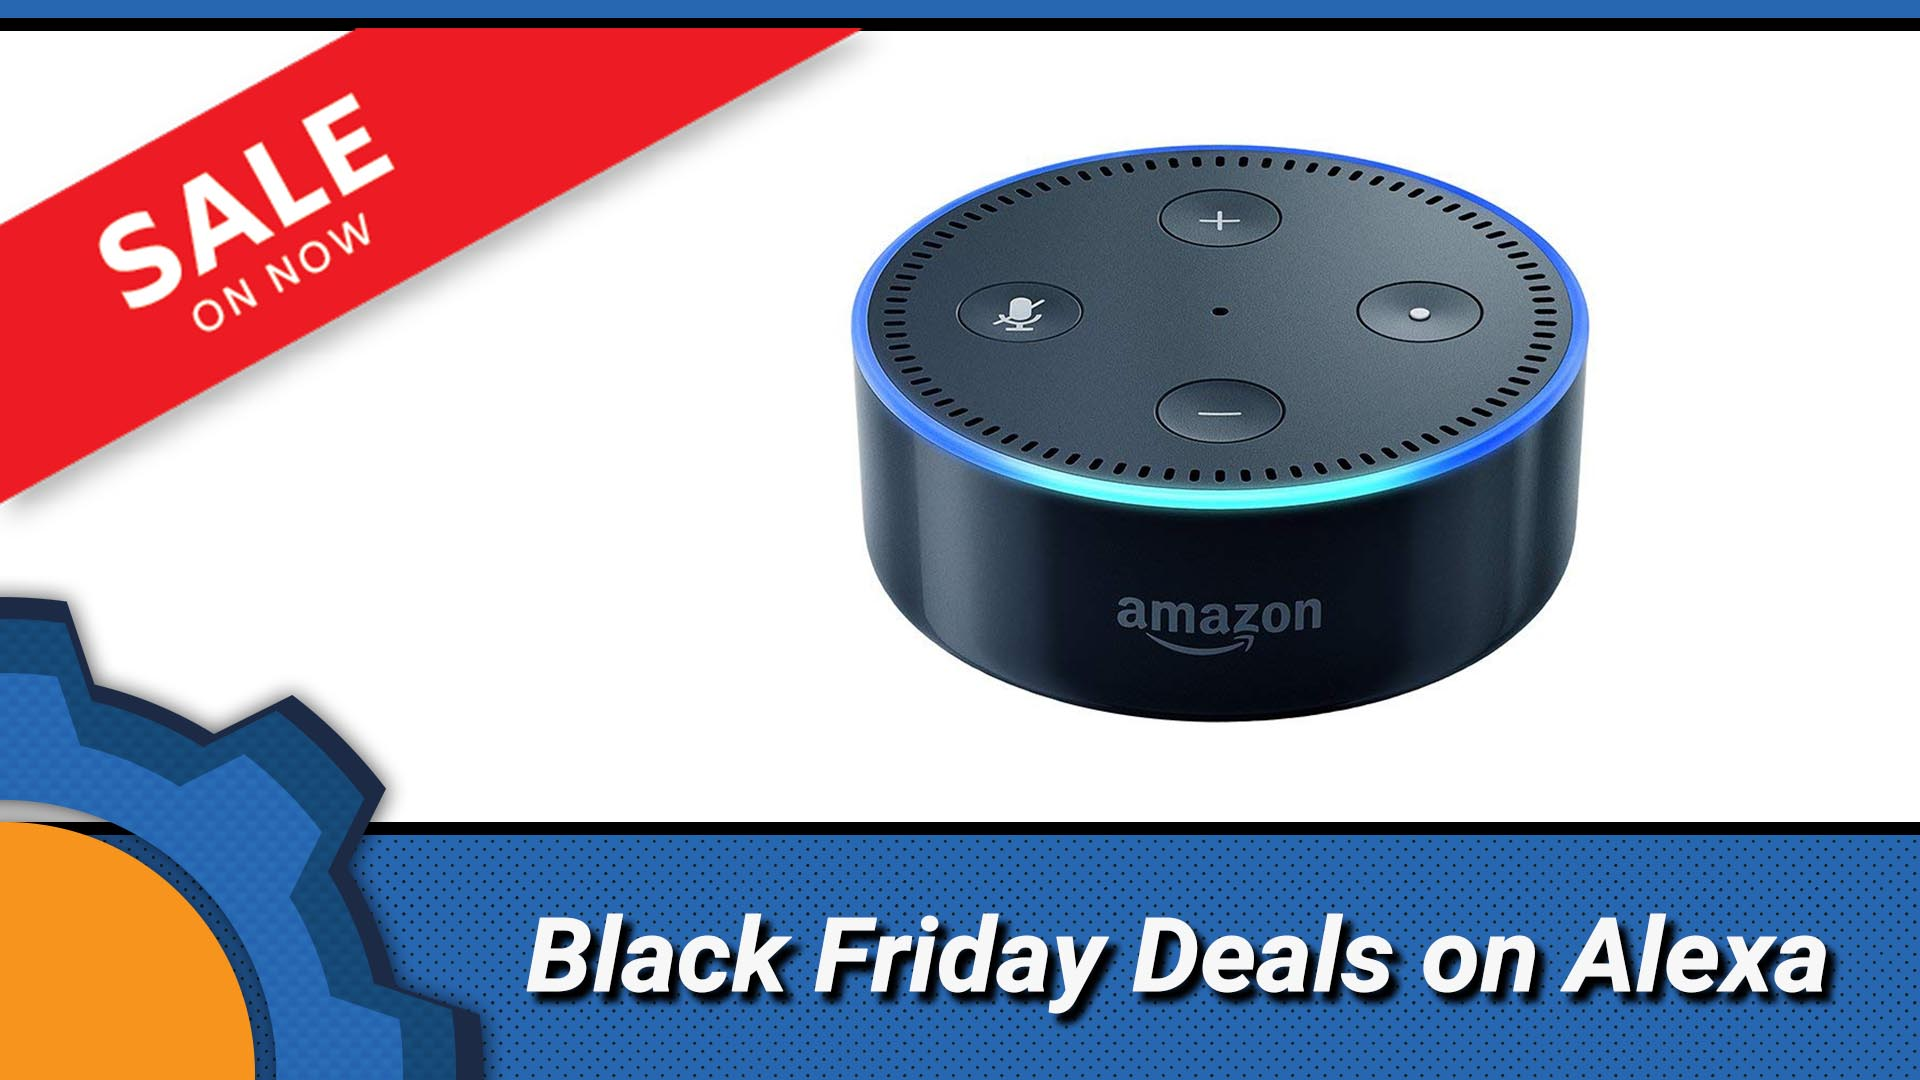 Amazon Echo Dot Black Friday Deals In The Uk Notenoughtech